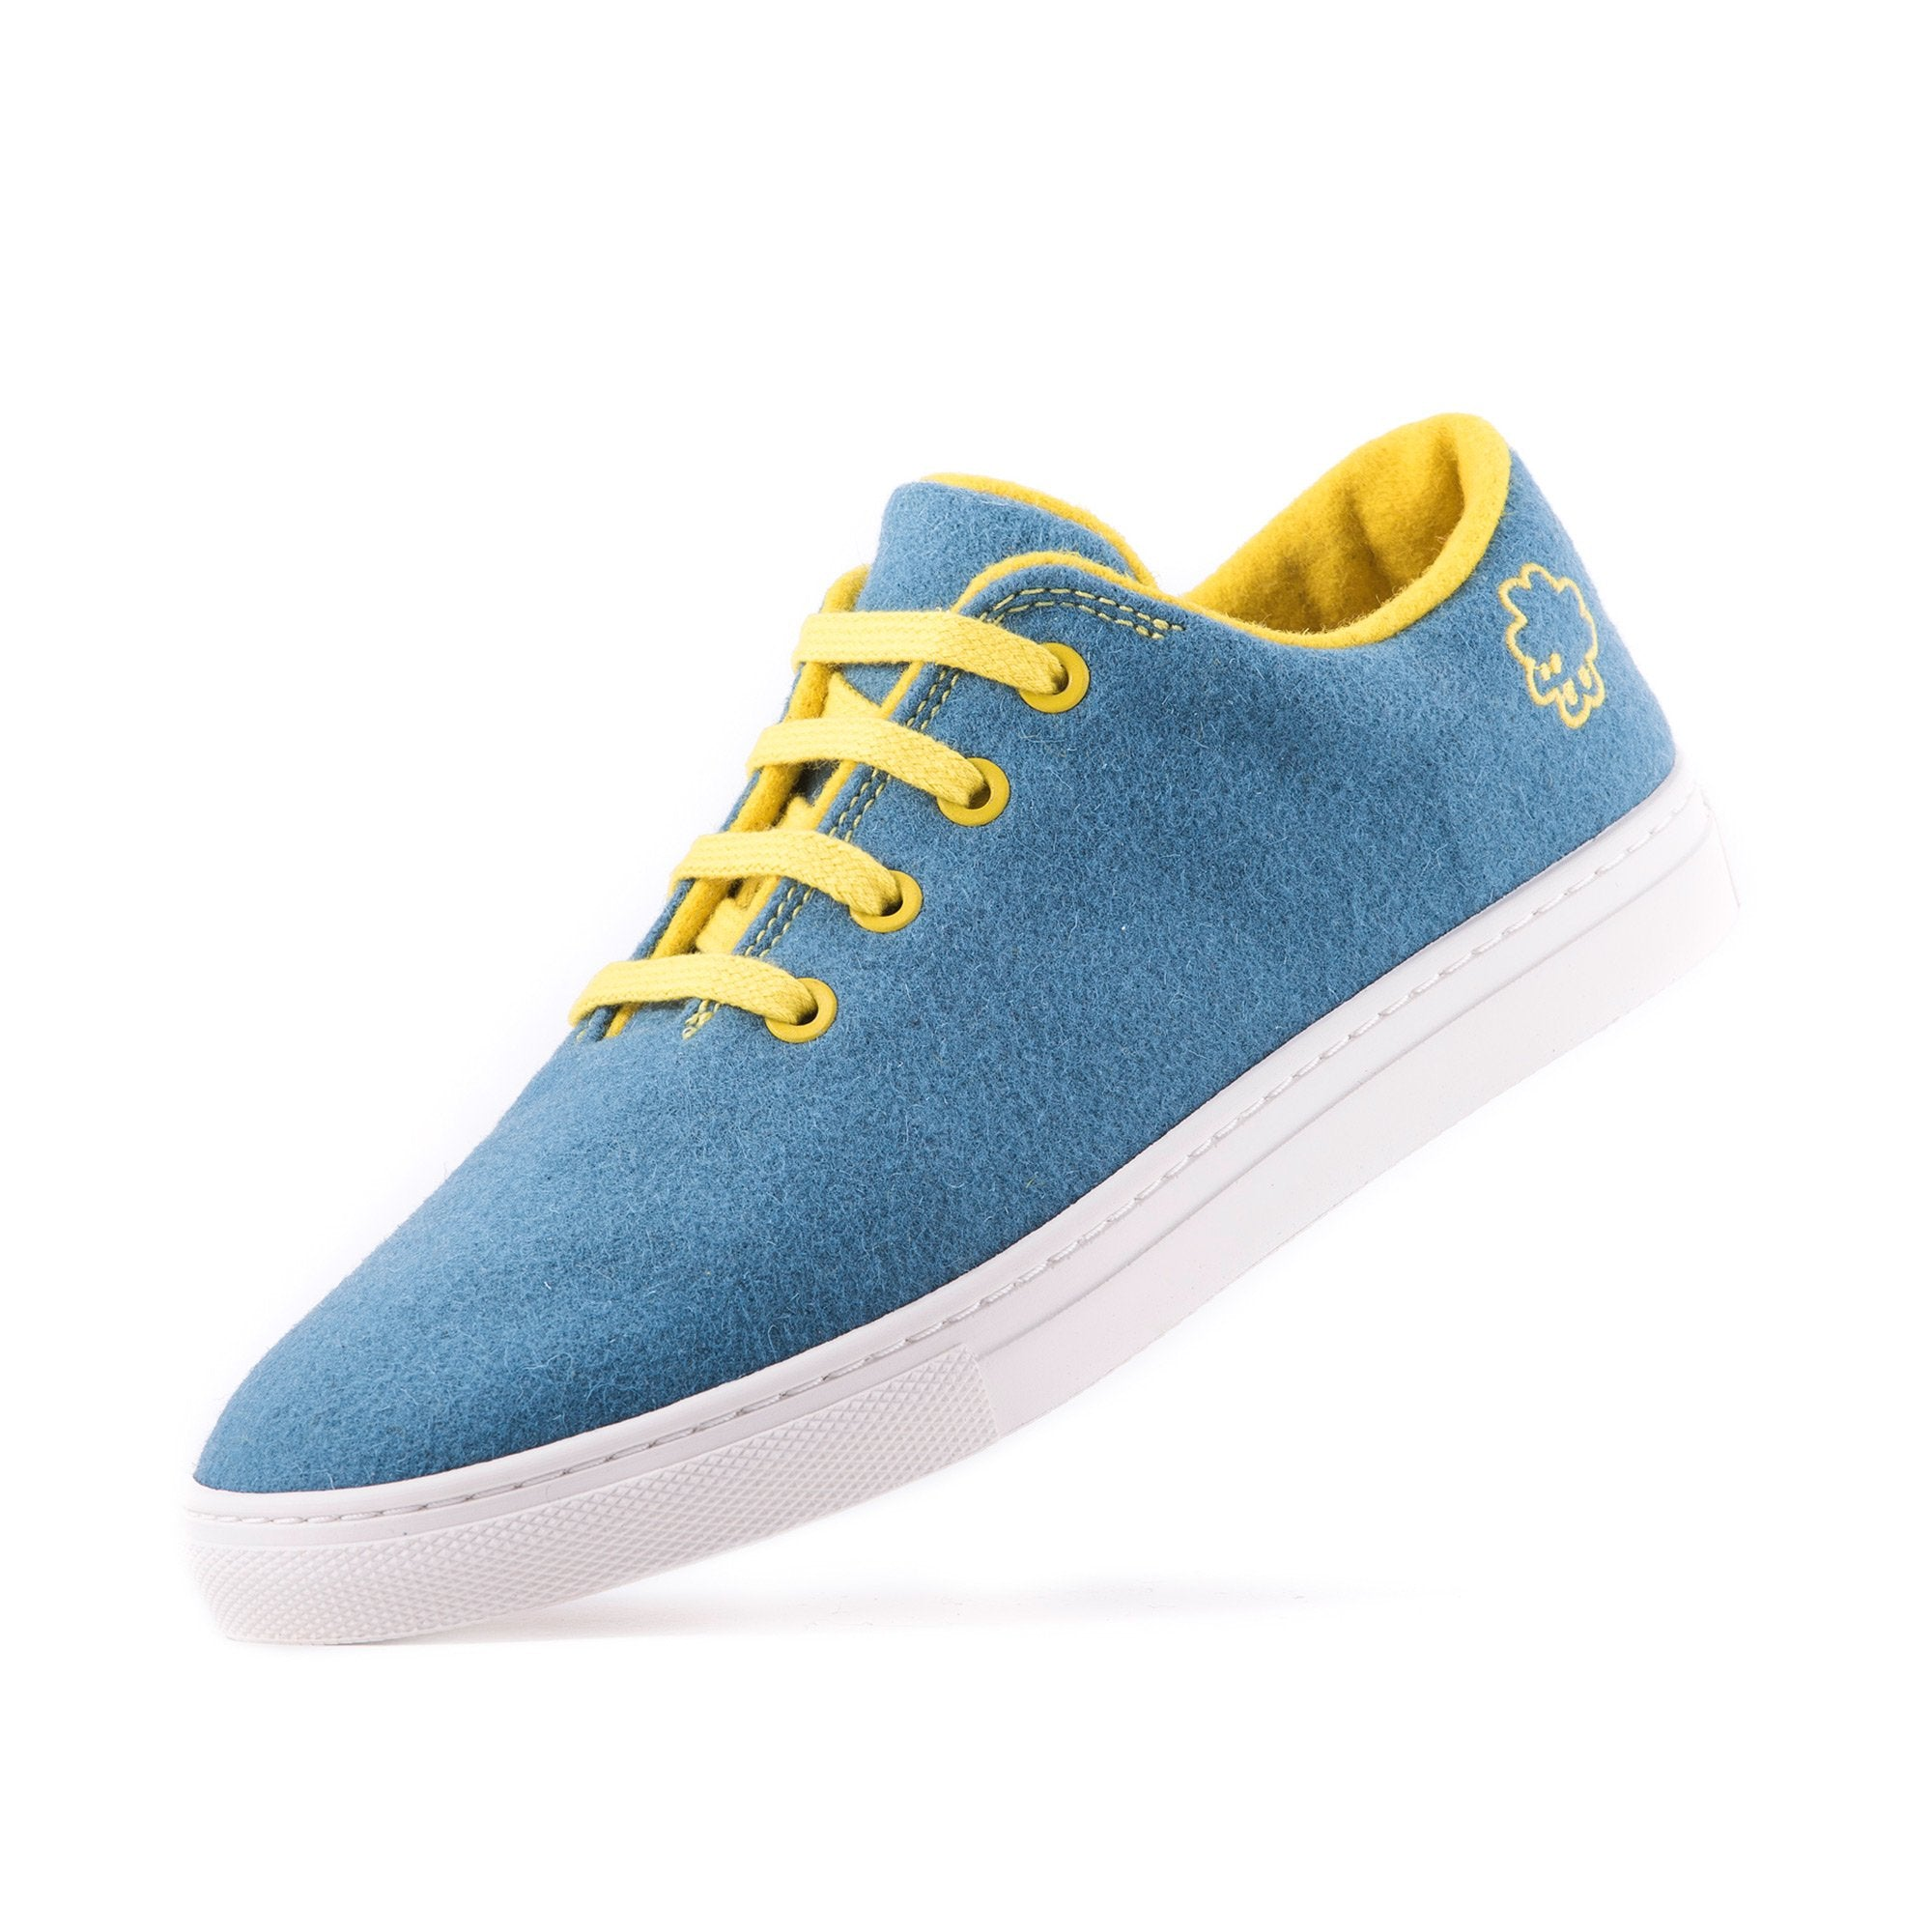 Sneaker Light Blue / Yellow